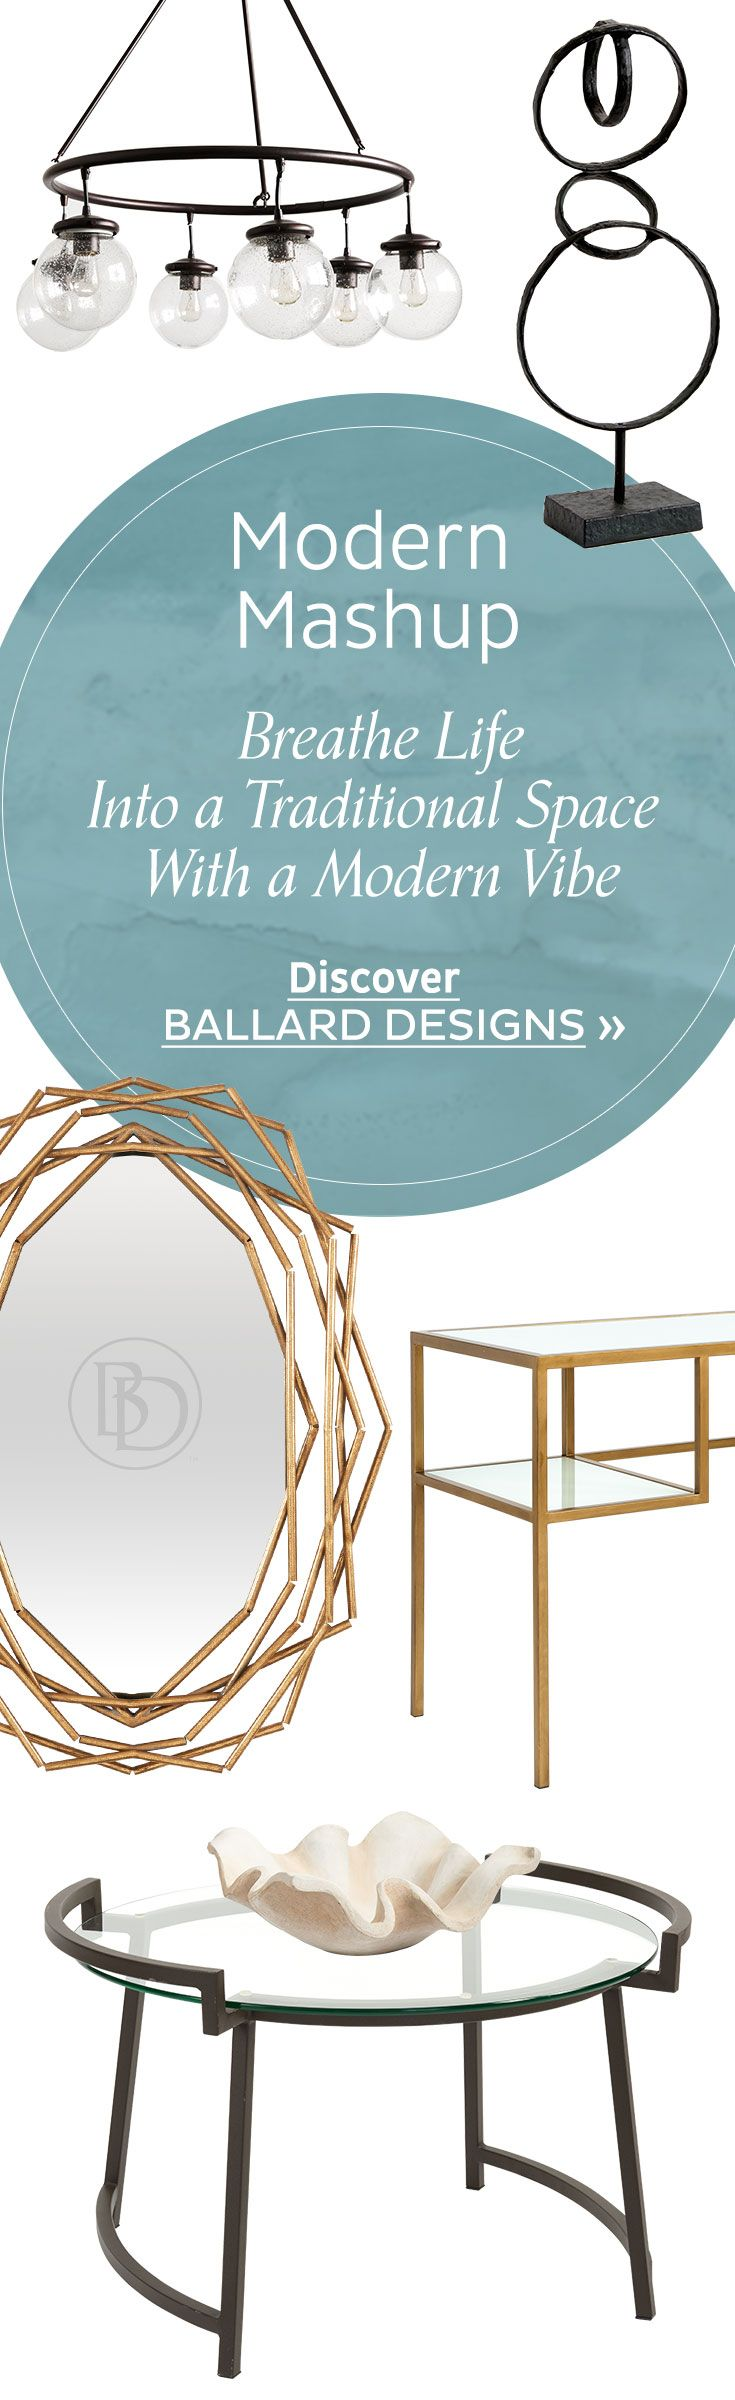 516 best loves images on pinterest ballard designs boston and modern mashup take your traditional space up a notch with these modern pieces